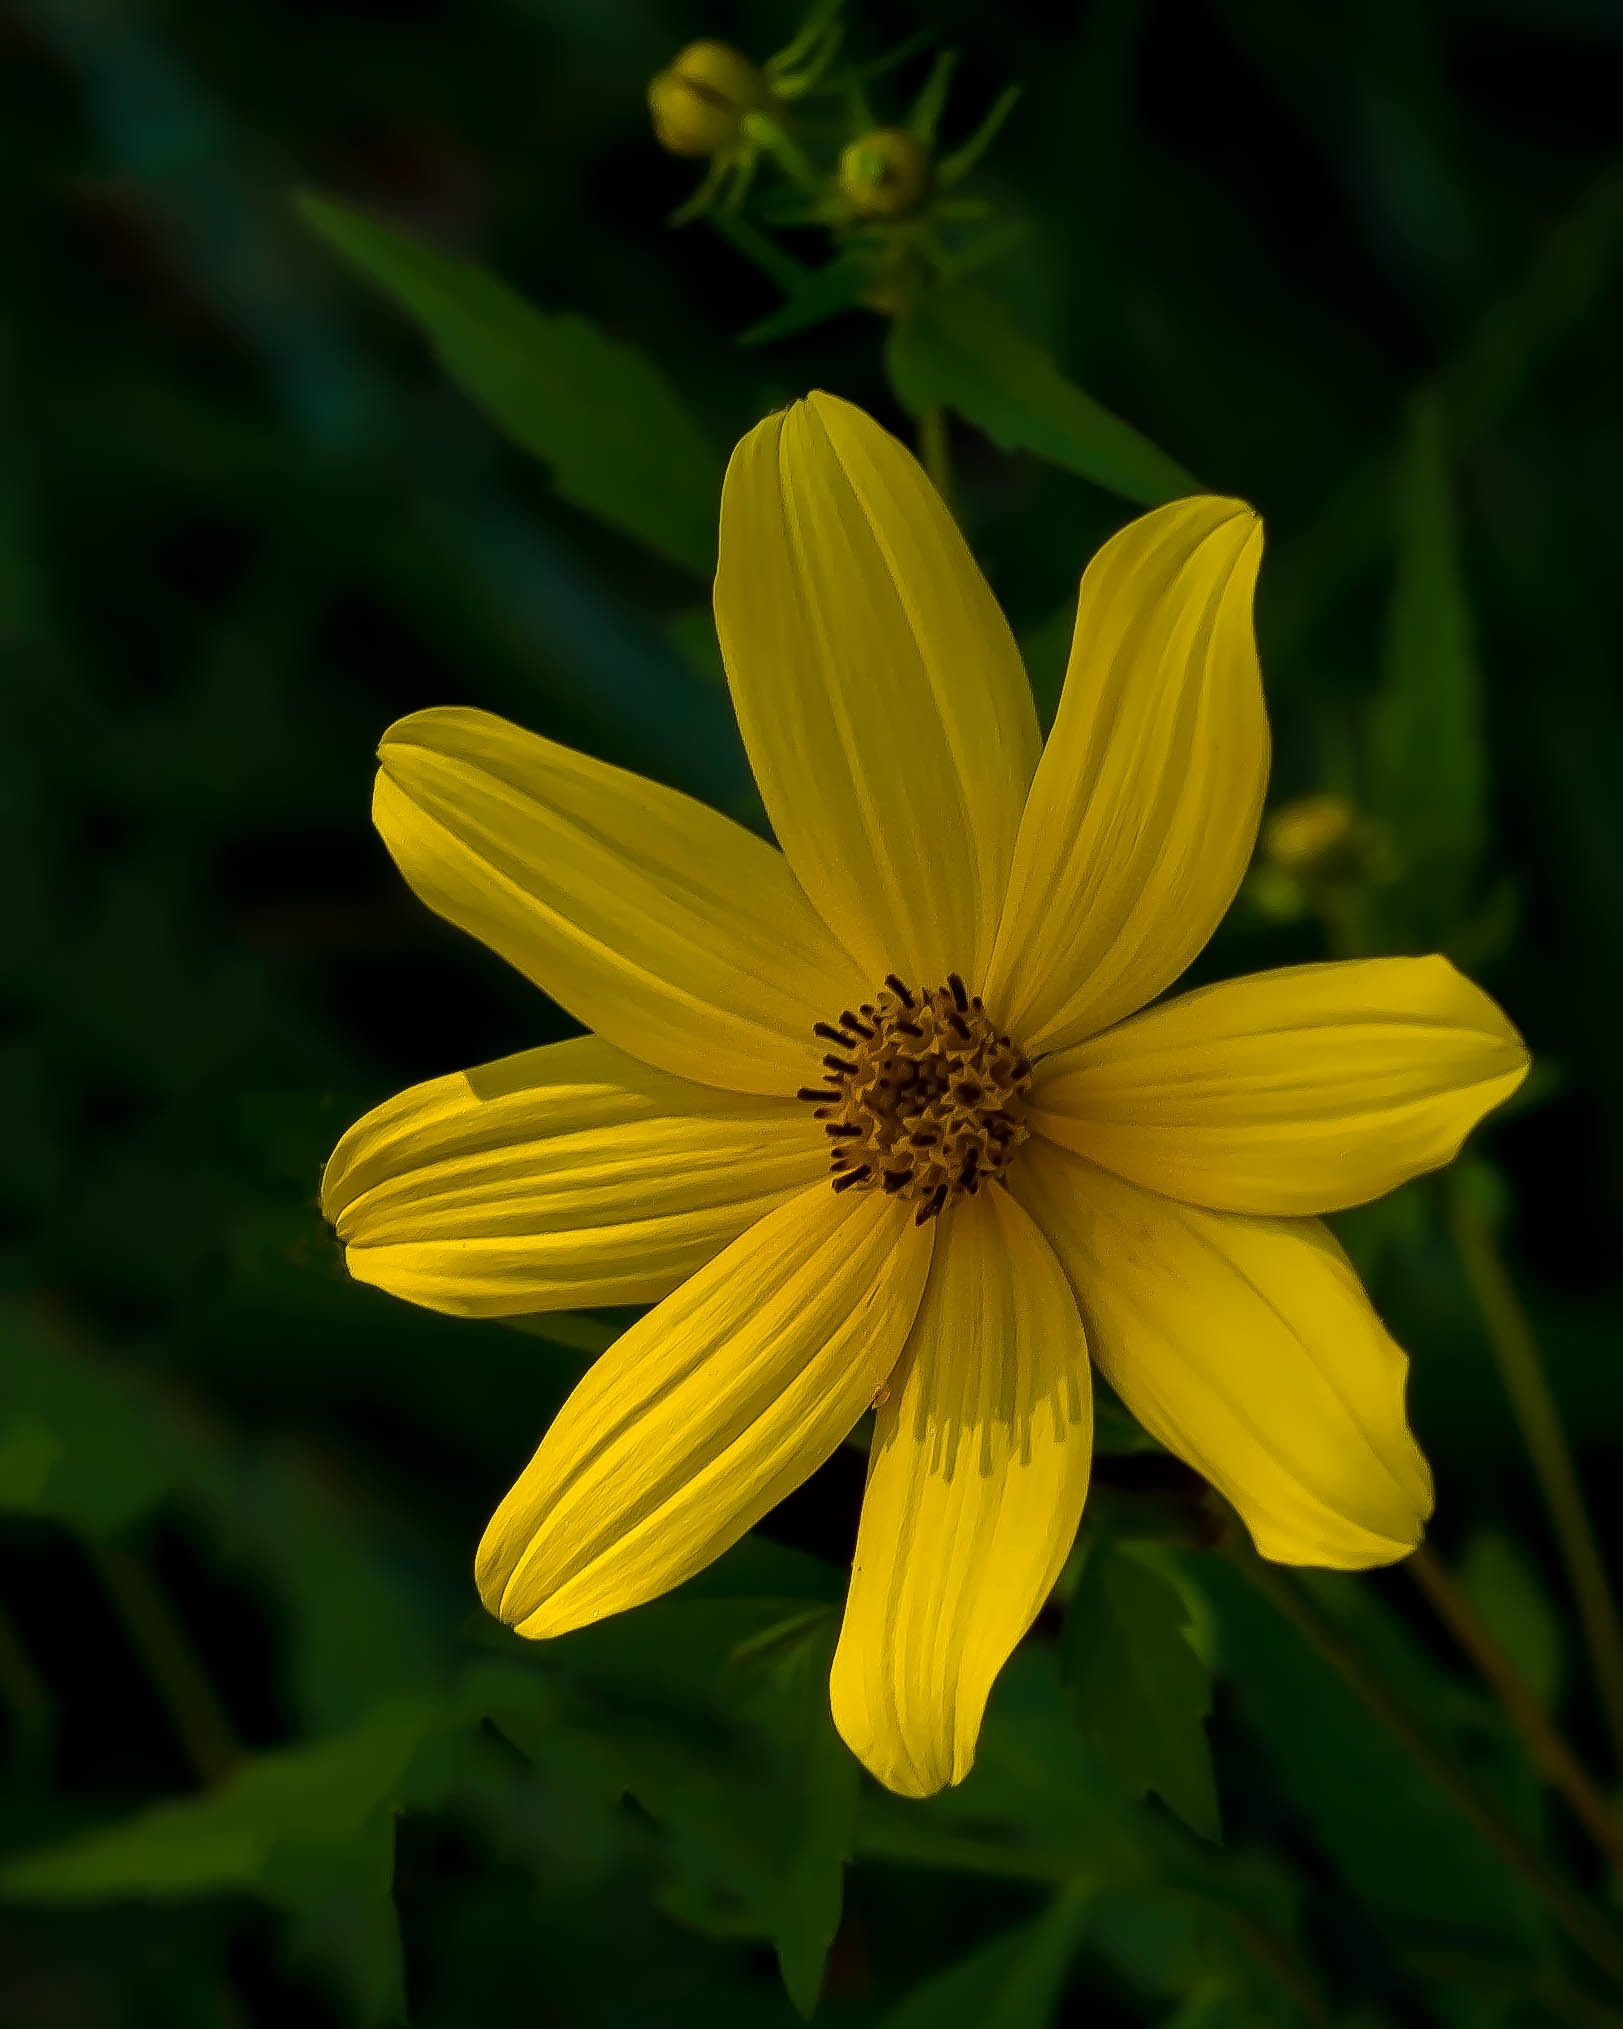 Wildflower On A Summer Day by Edward Brown